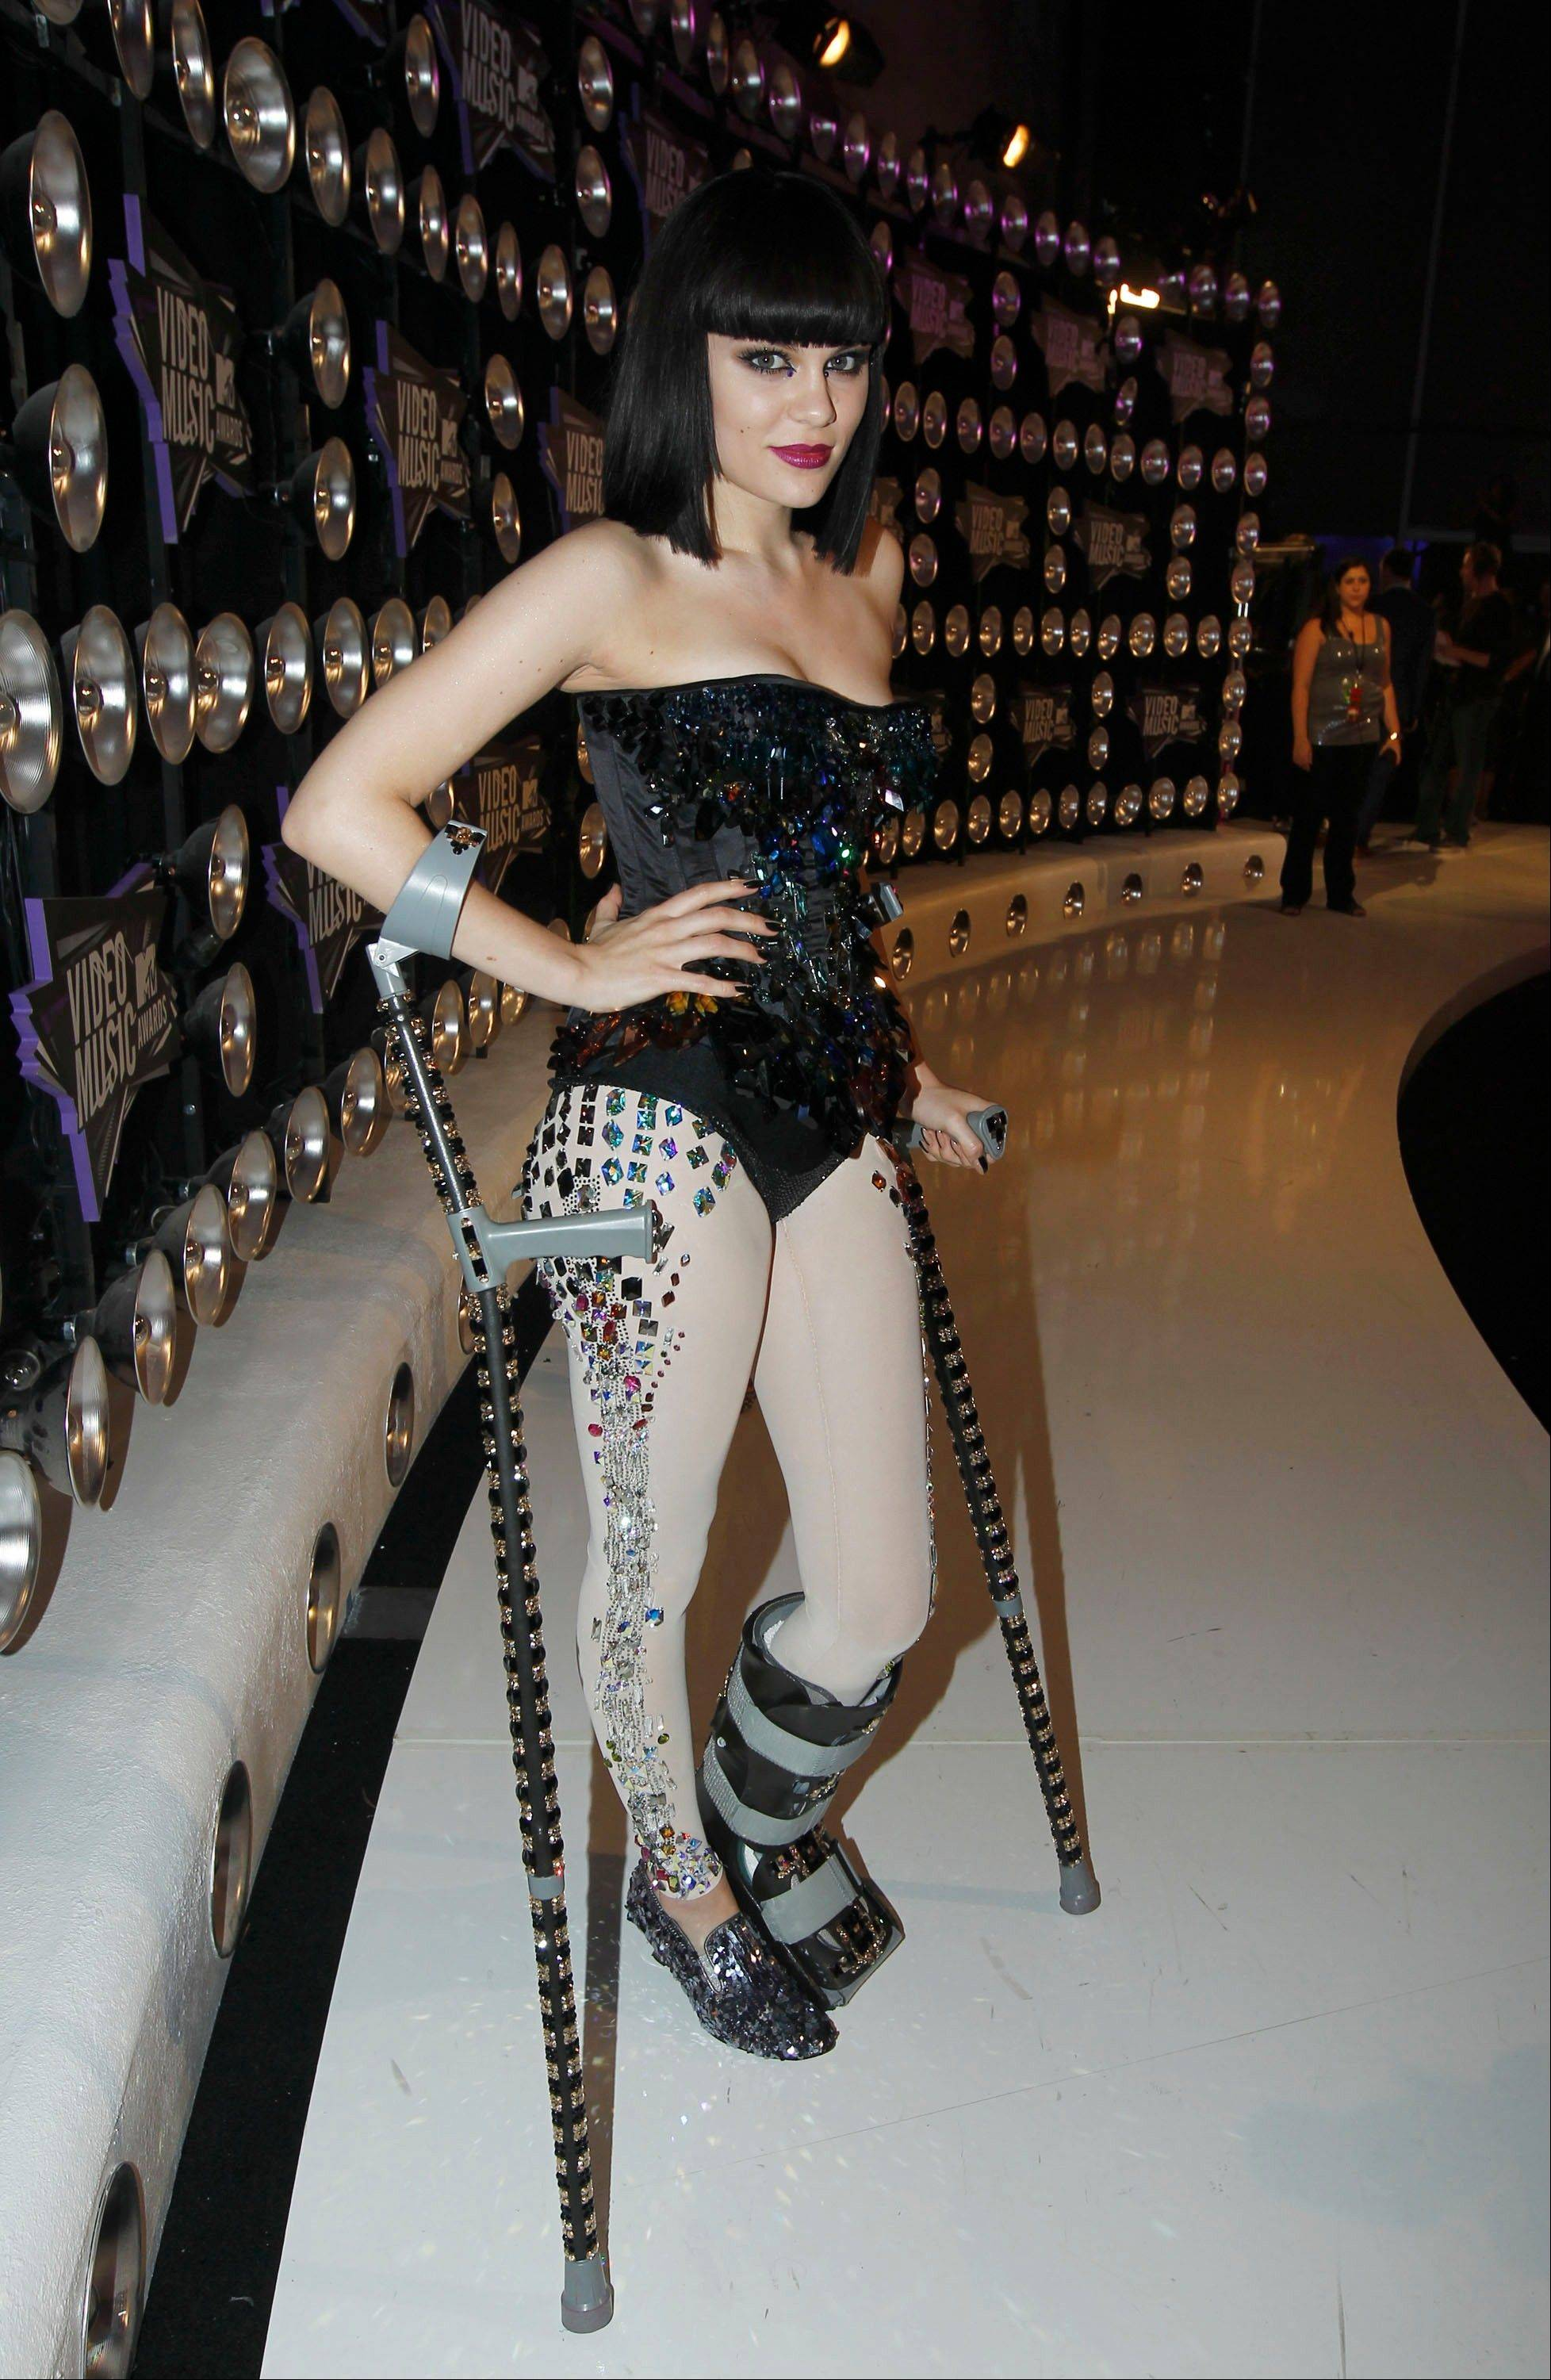 British singer Jessie J makes her way - crutches and all - into the VMAs Sunday in Los Angeles.